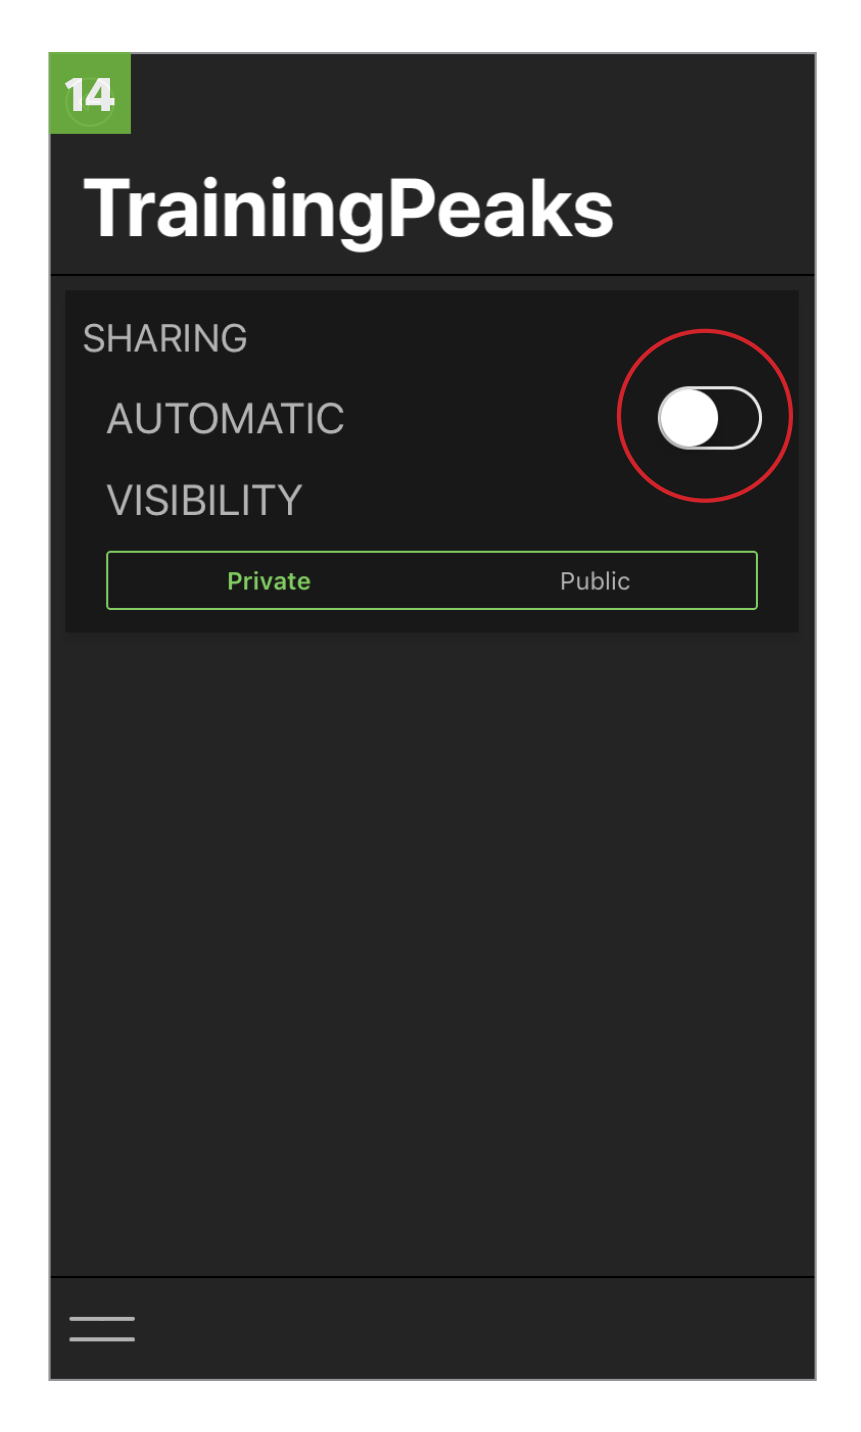 Toggle to  AUTOMATIC  to automatically share workouts ridden in Kinetic Fit to TrainingPeaks. Select  PRIVATE  or  PUBLIC  for sharing visibility in TrainingPeaks.